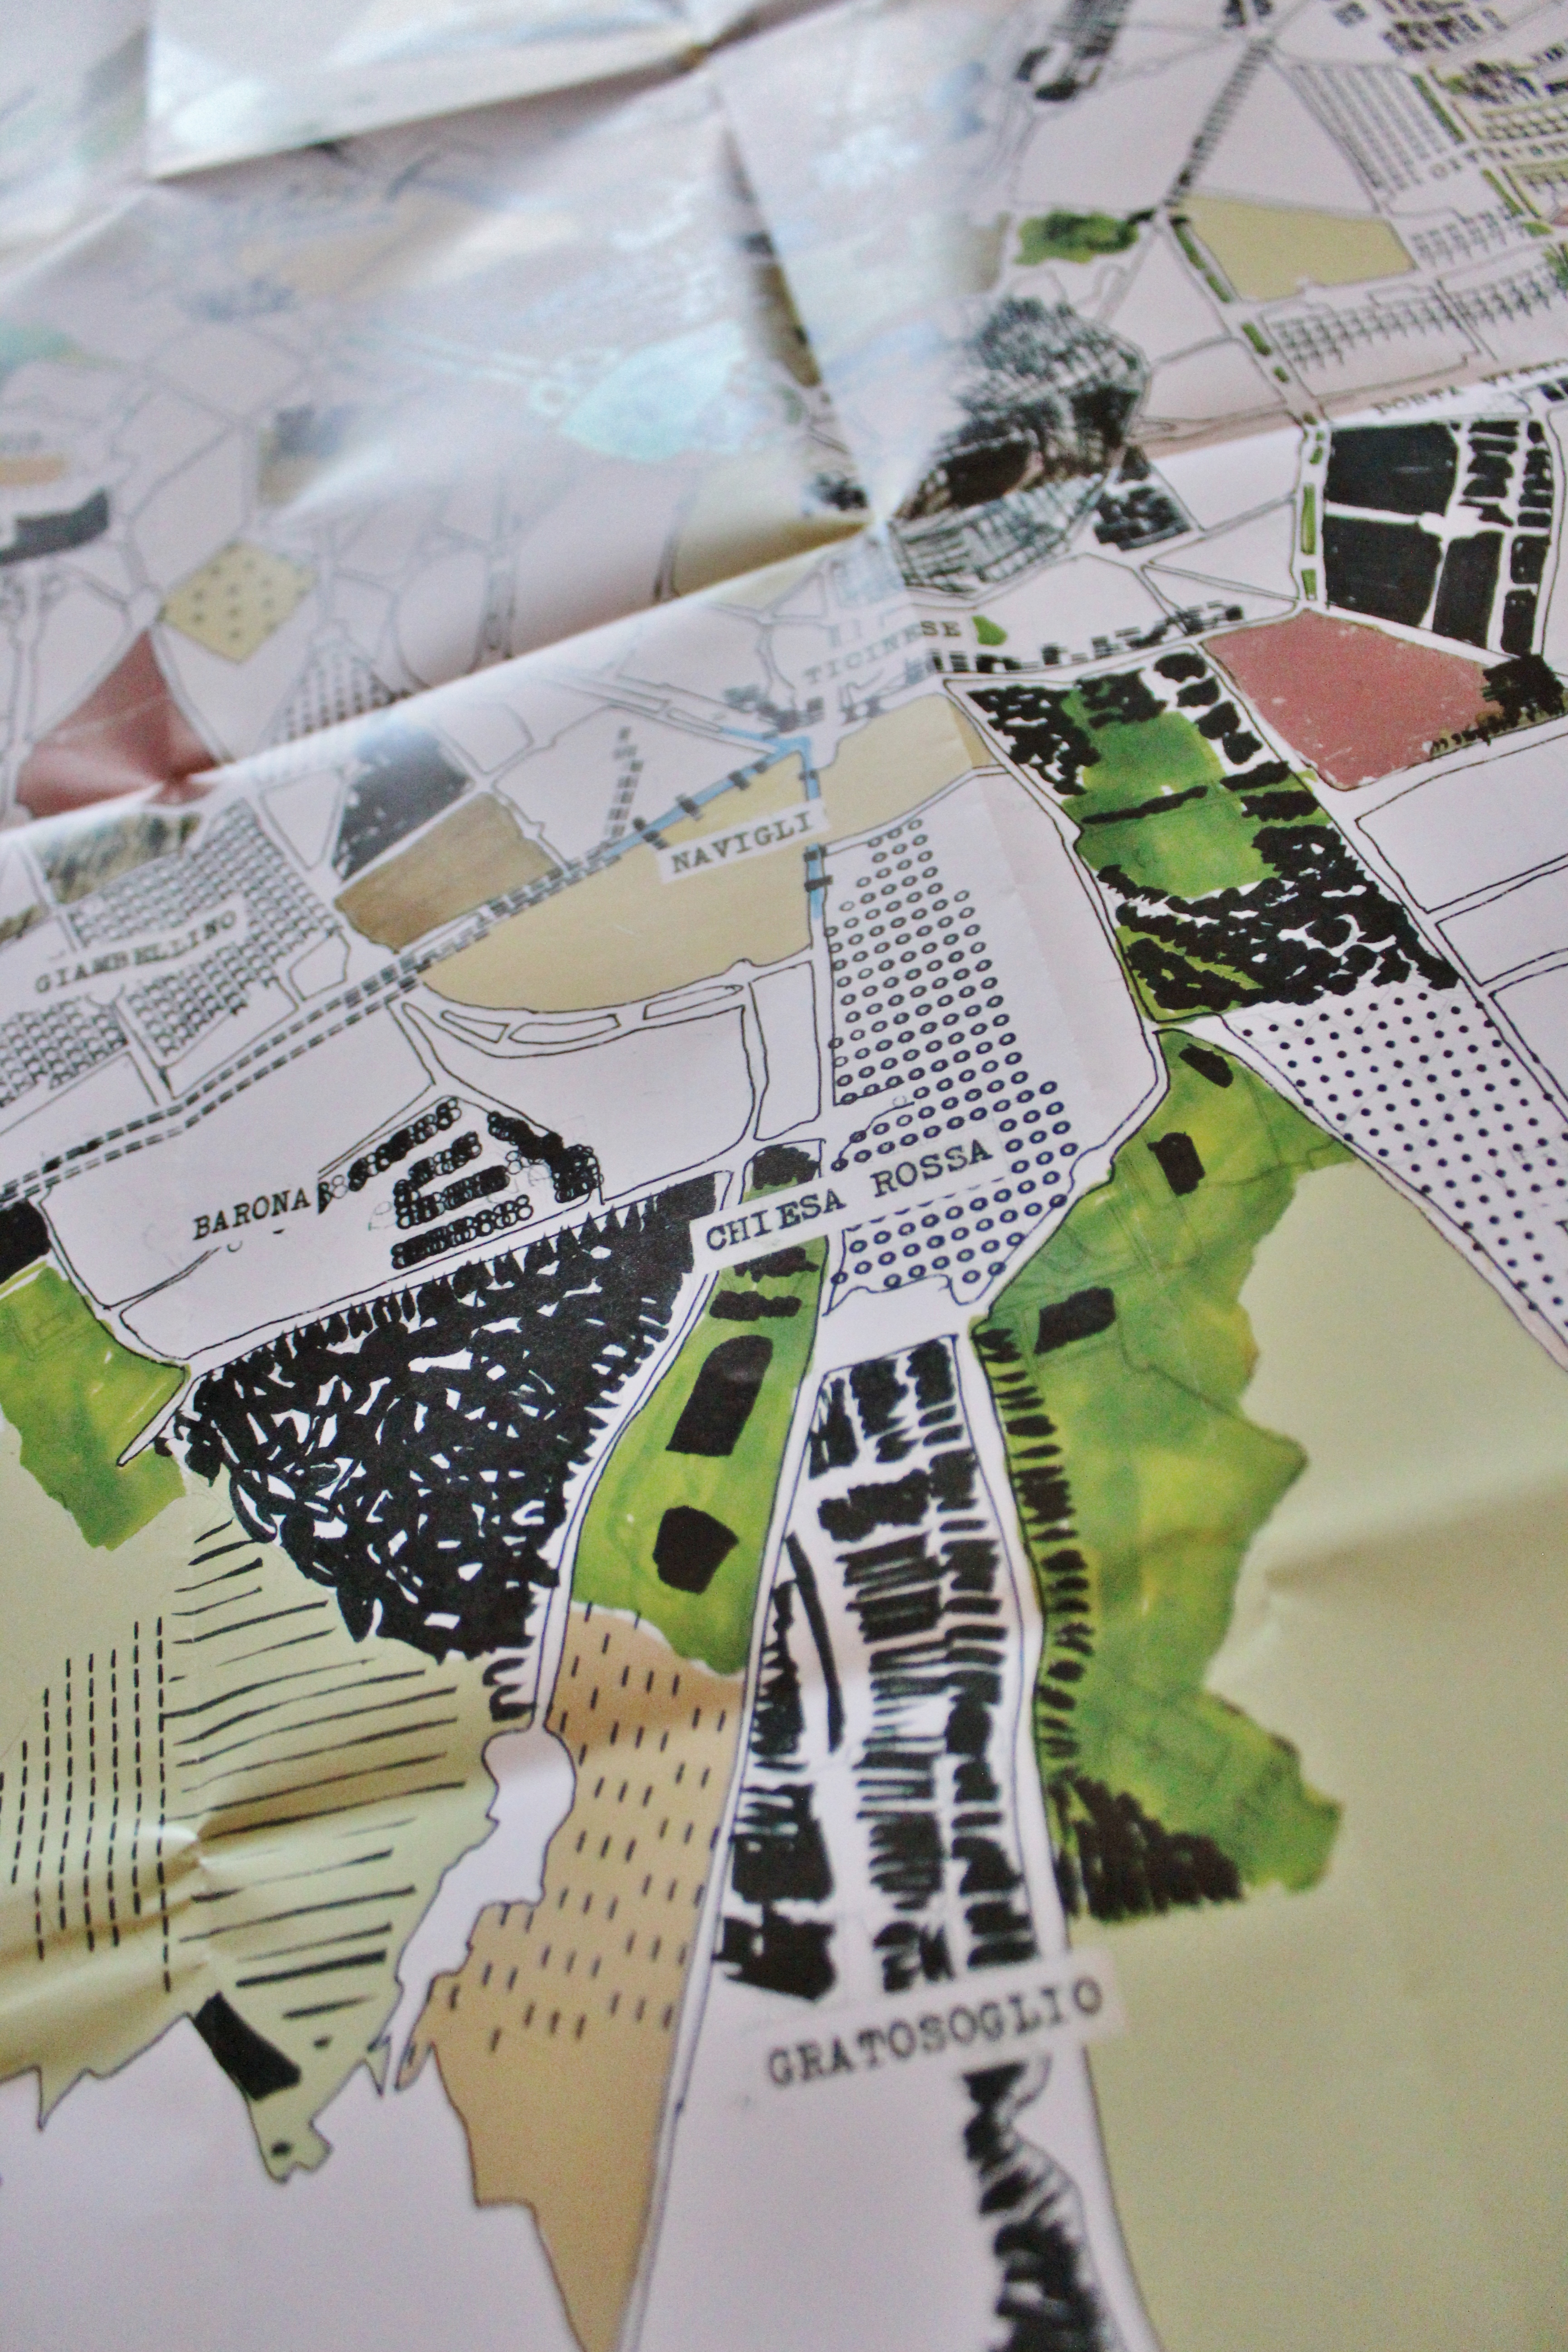 Detail of Milan city map by Lilo